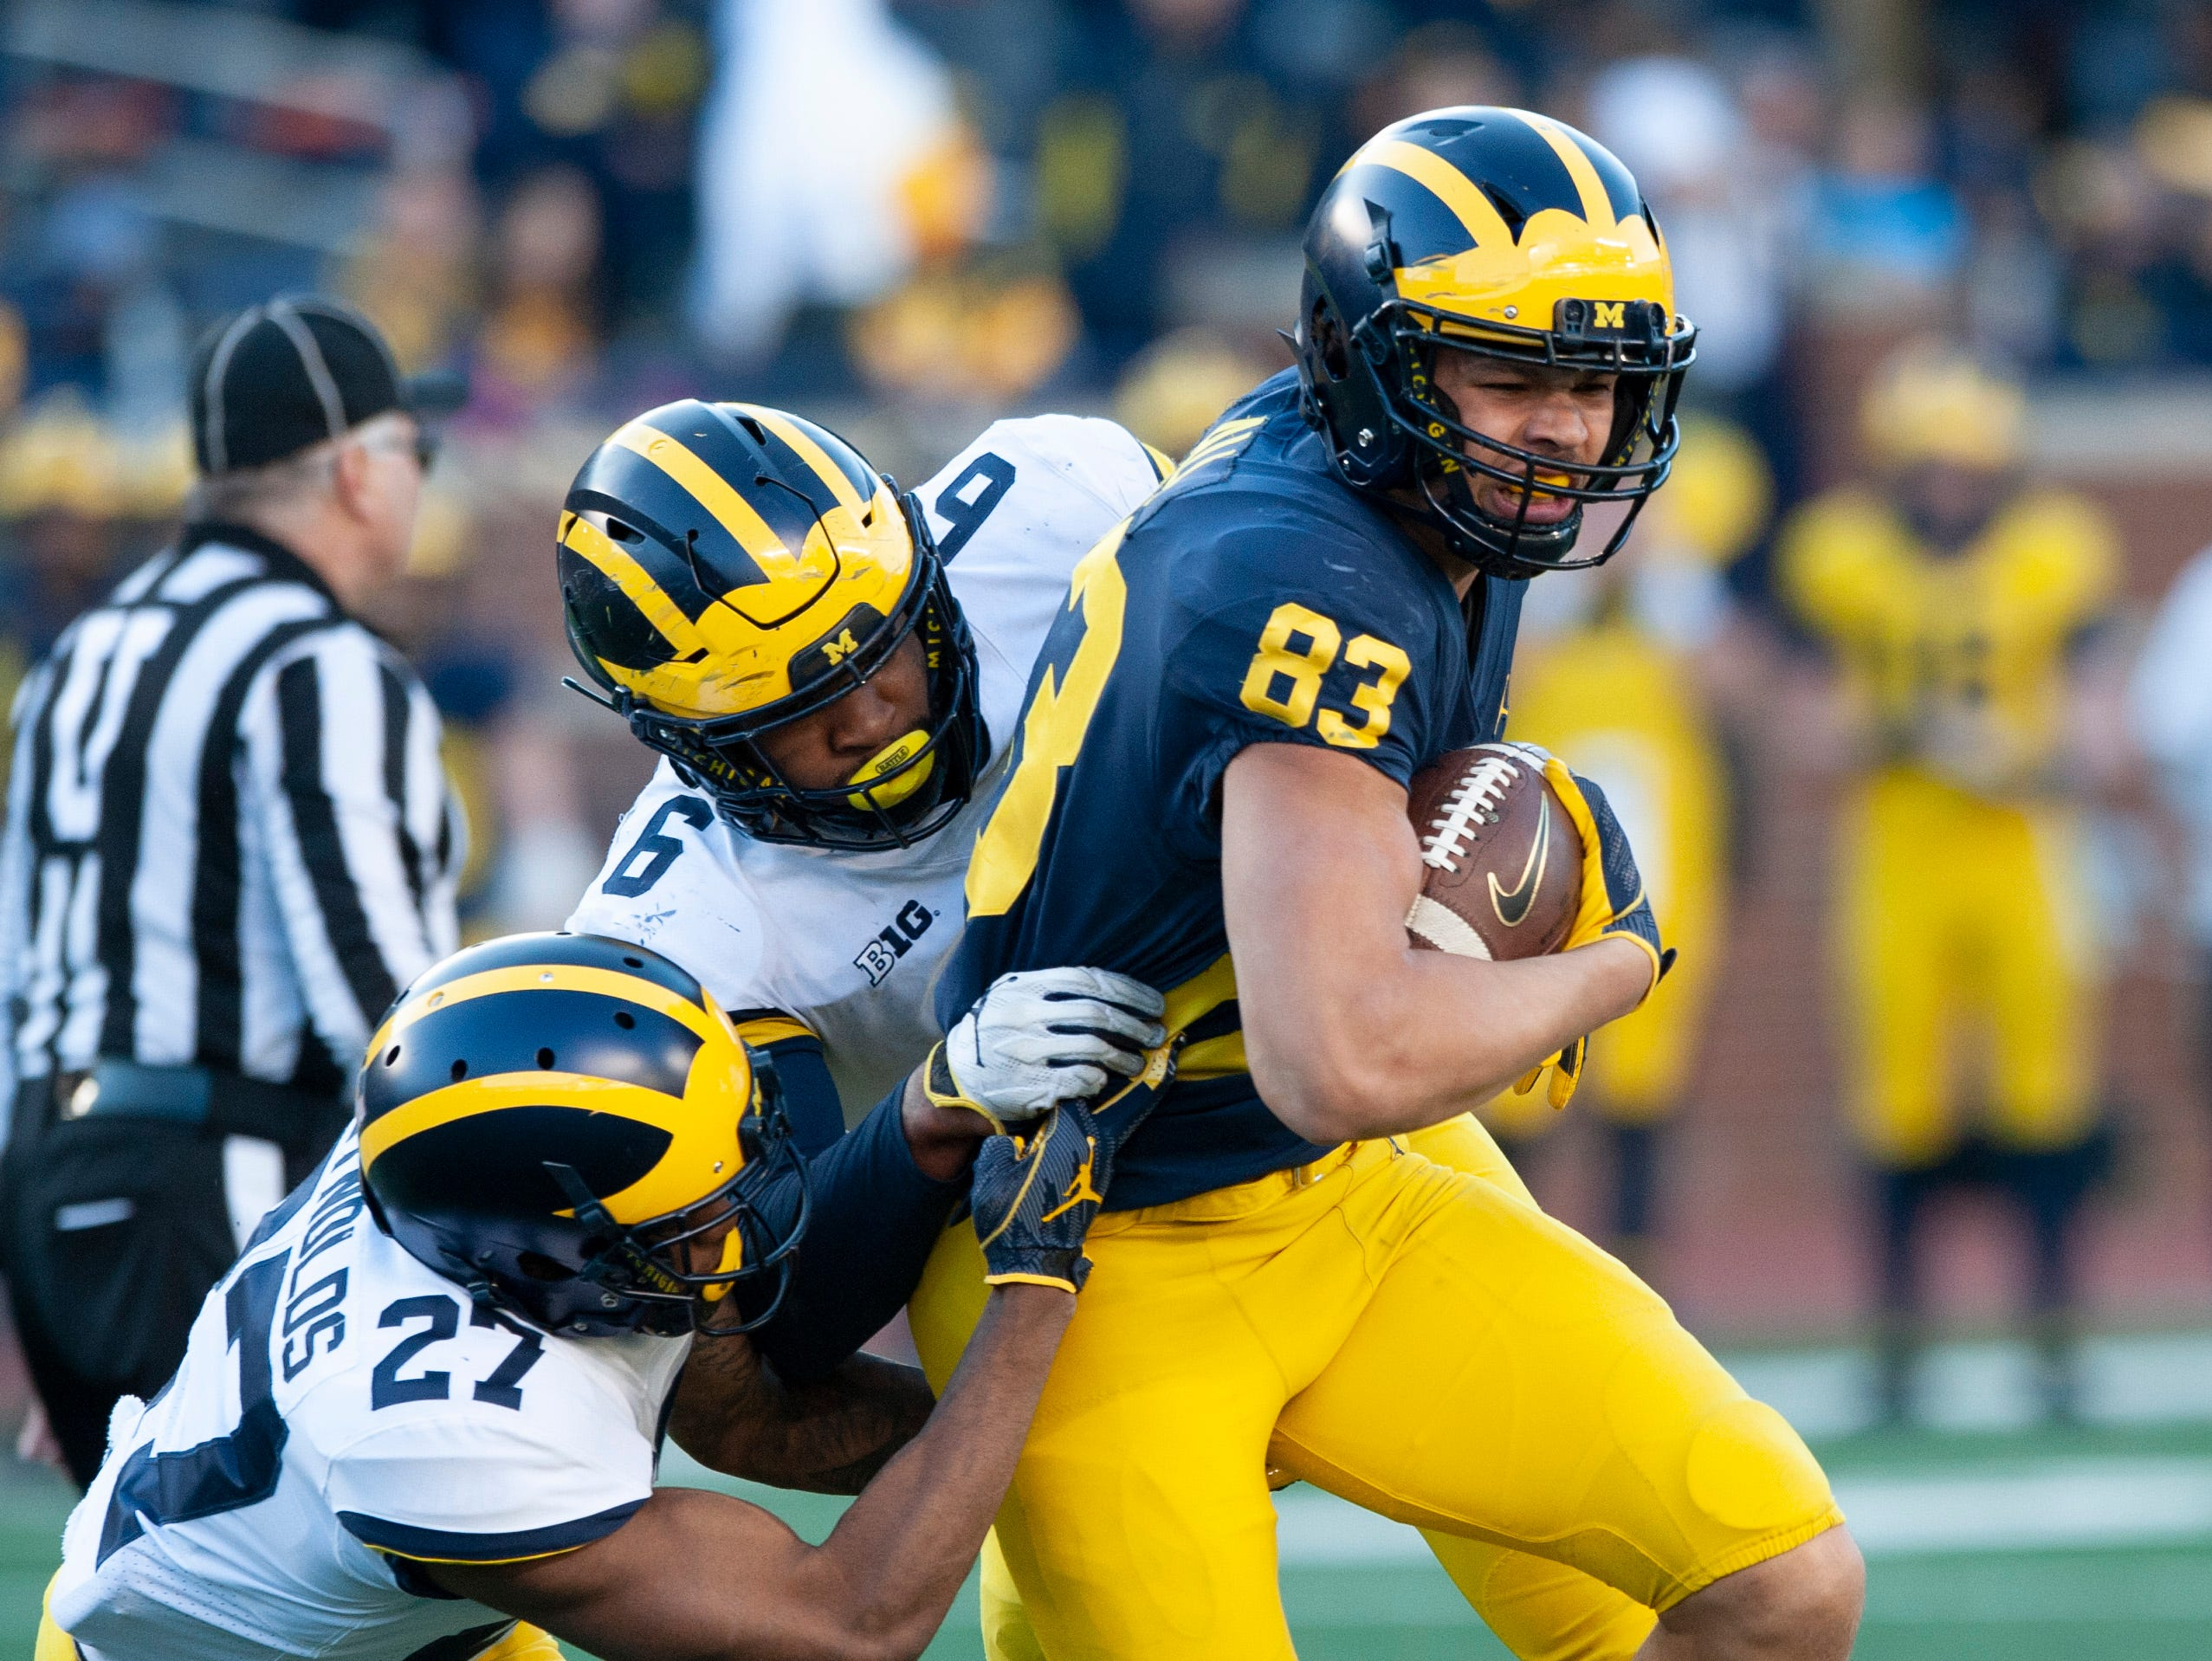 Michigan TE Erick All (83) is tackled by Michigan defenders Hunter Reynolds (27) and Michael Barrett (6) after catching a pass in the scrimmage.